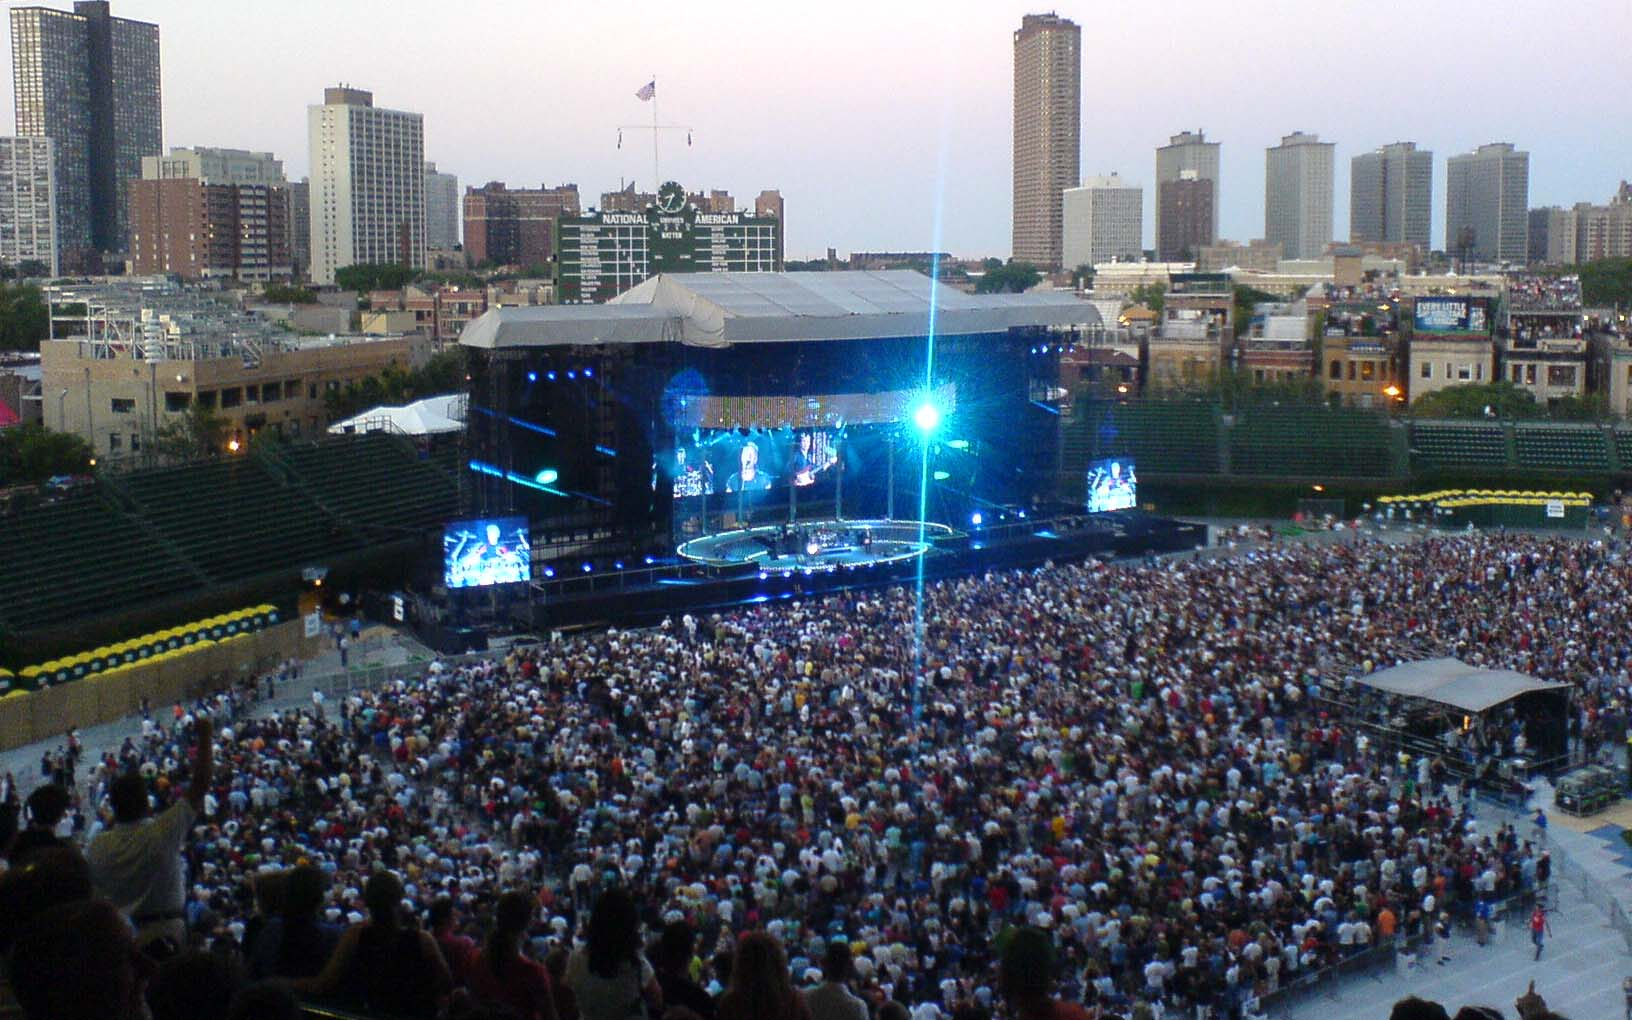 You Can't Find a Better Concert Park Than Wrigley Field and Other Bullets